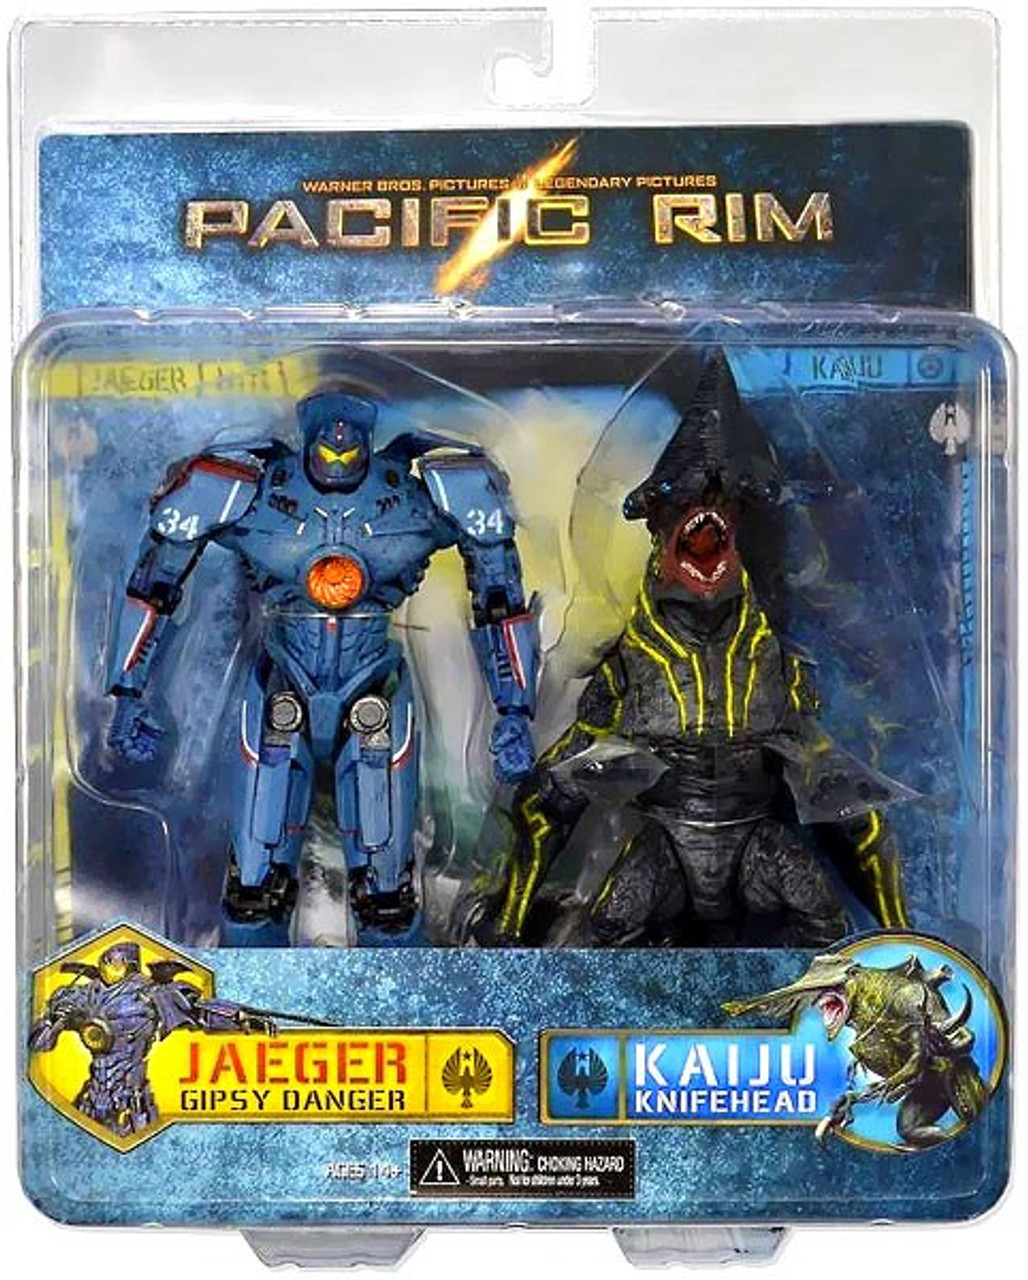 NECA Pacific Rim Gipsy Danger vs Knifehead Action Figure 2-Pack